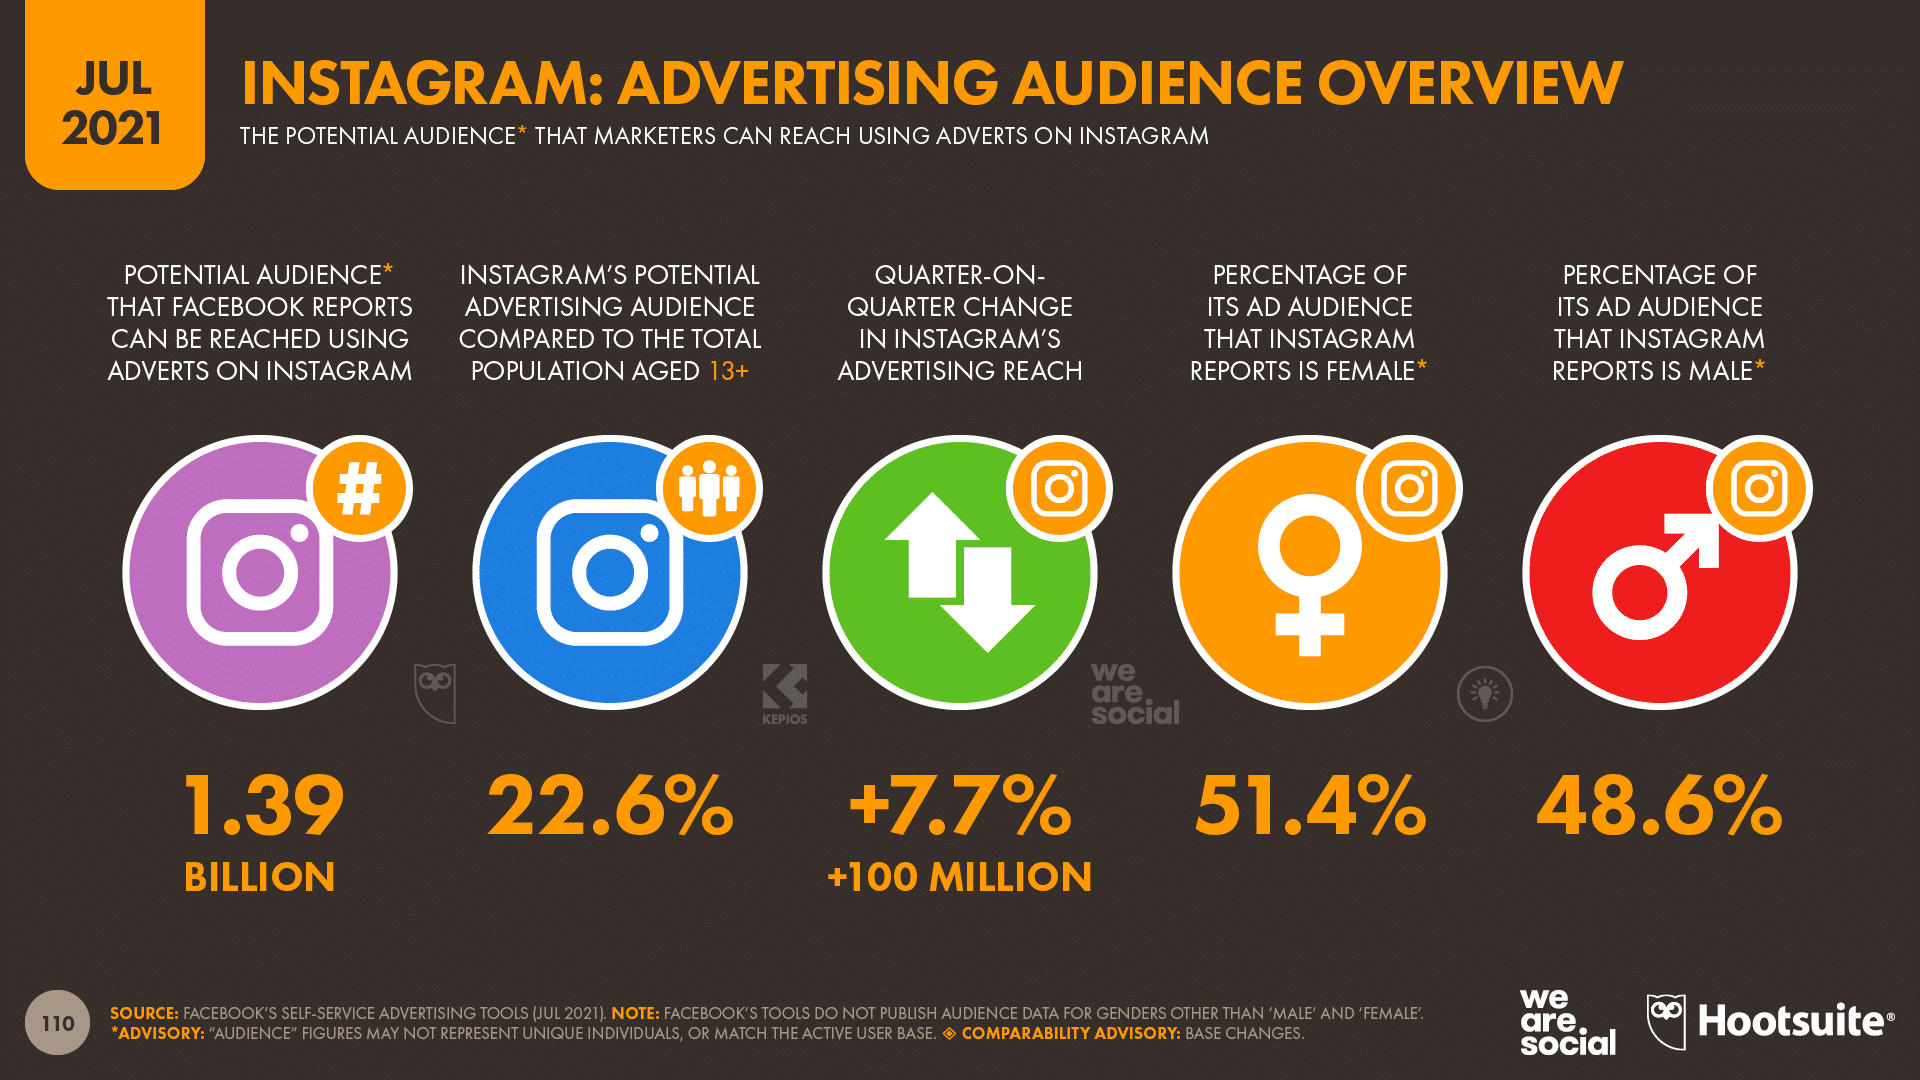 chart showing Instagram advertising audience overview as of July 2021